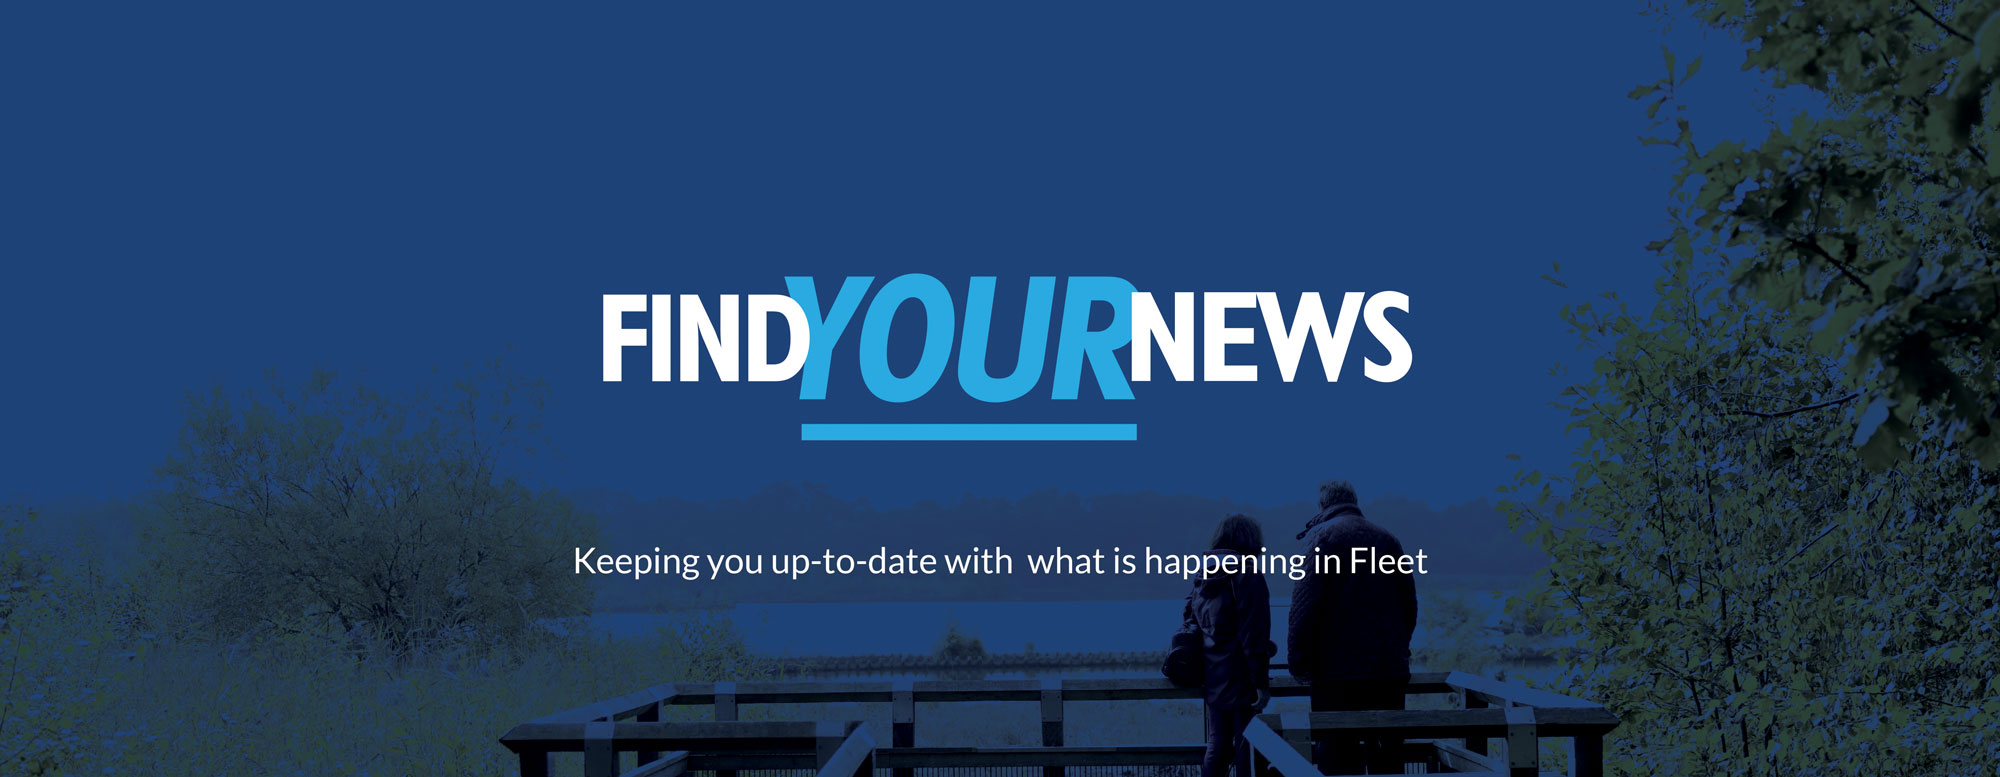 Find Your News